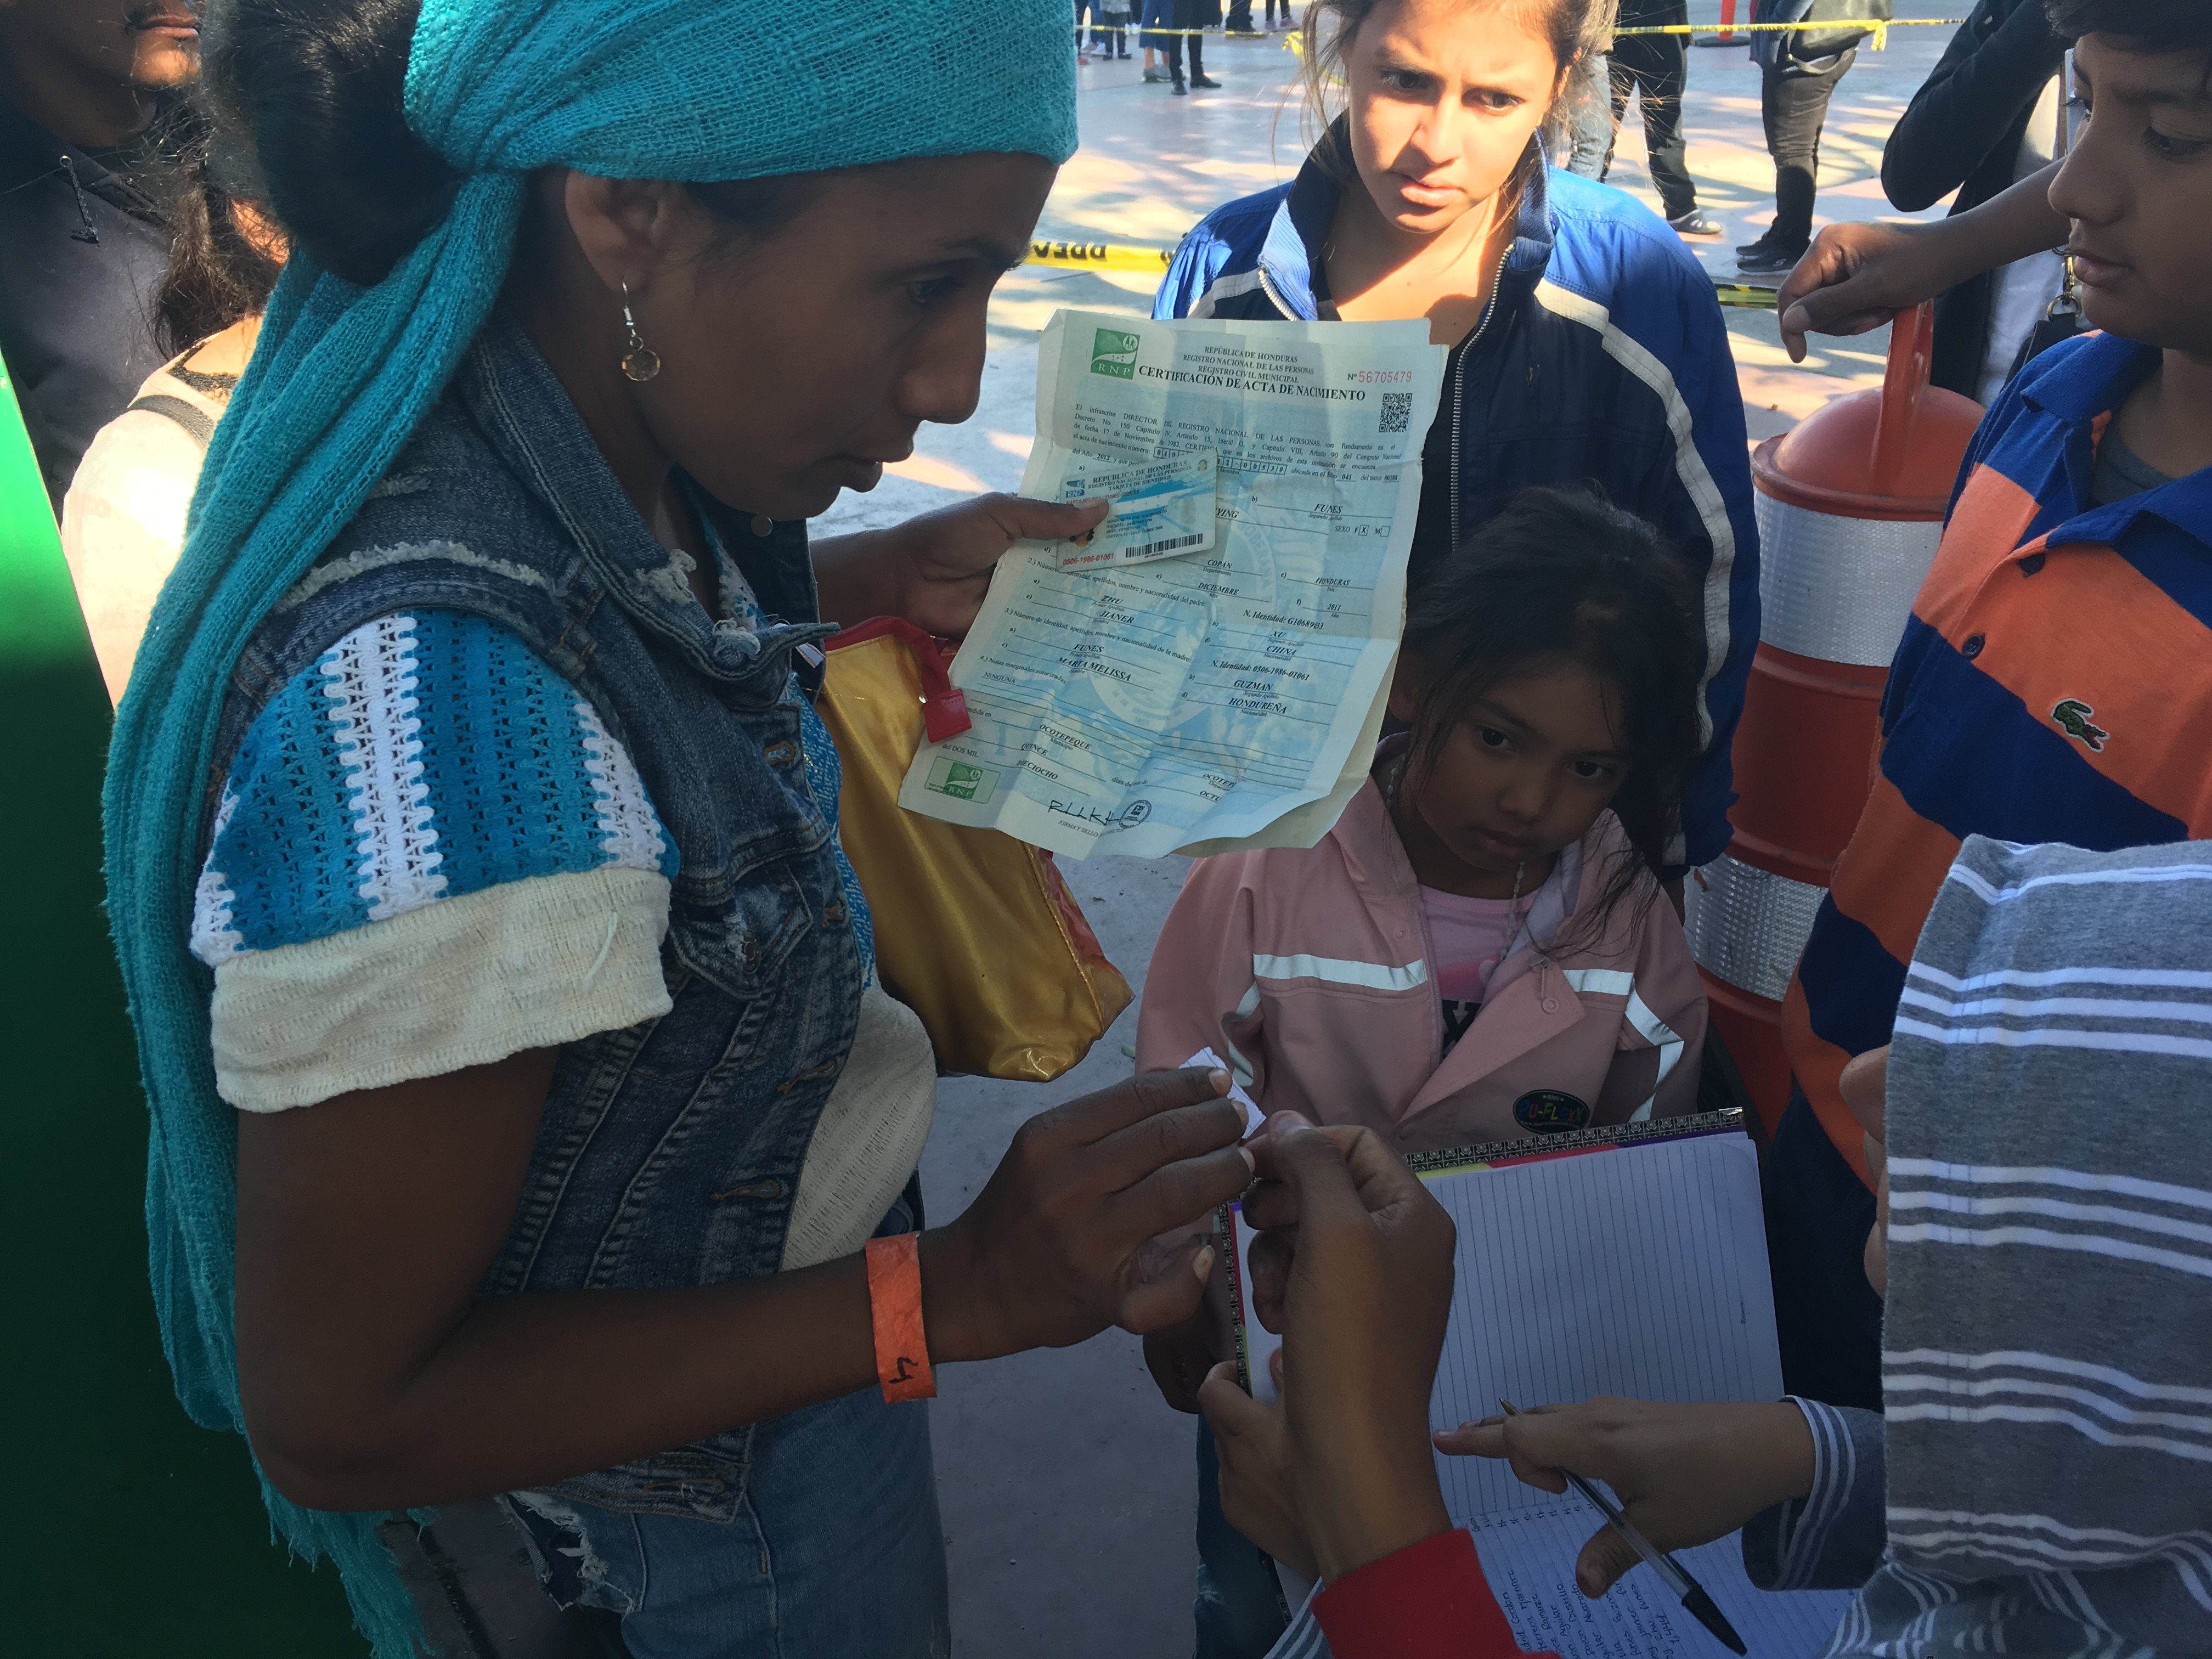 A mother and her kids registering their names in the notebook at the port of entry so they can get on the list to apply for asylum in the US.